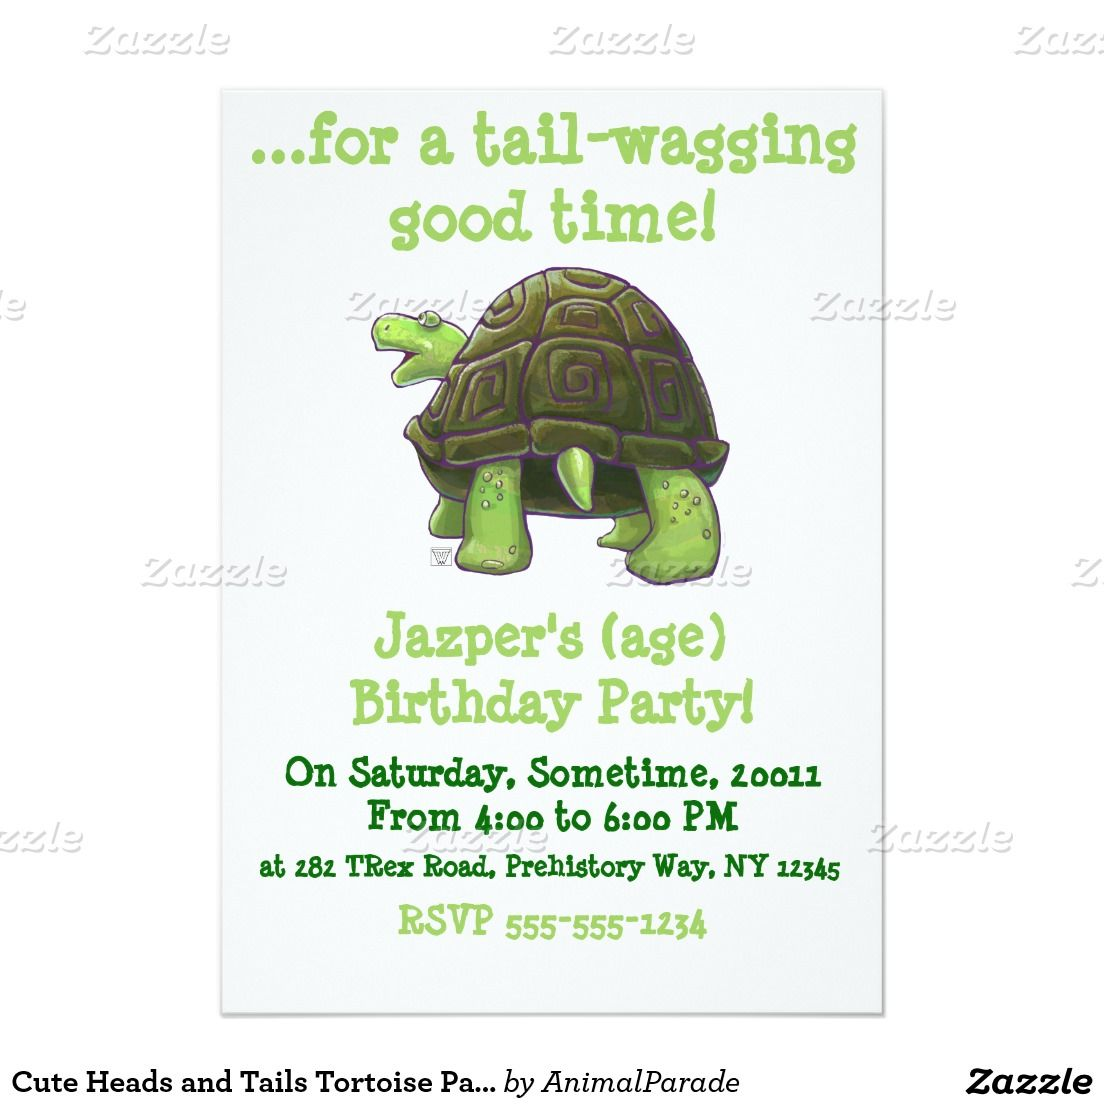 Cute Heads And Tails Tortoise Party Center Invitation Zazzle Com